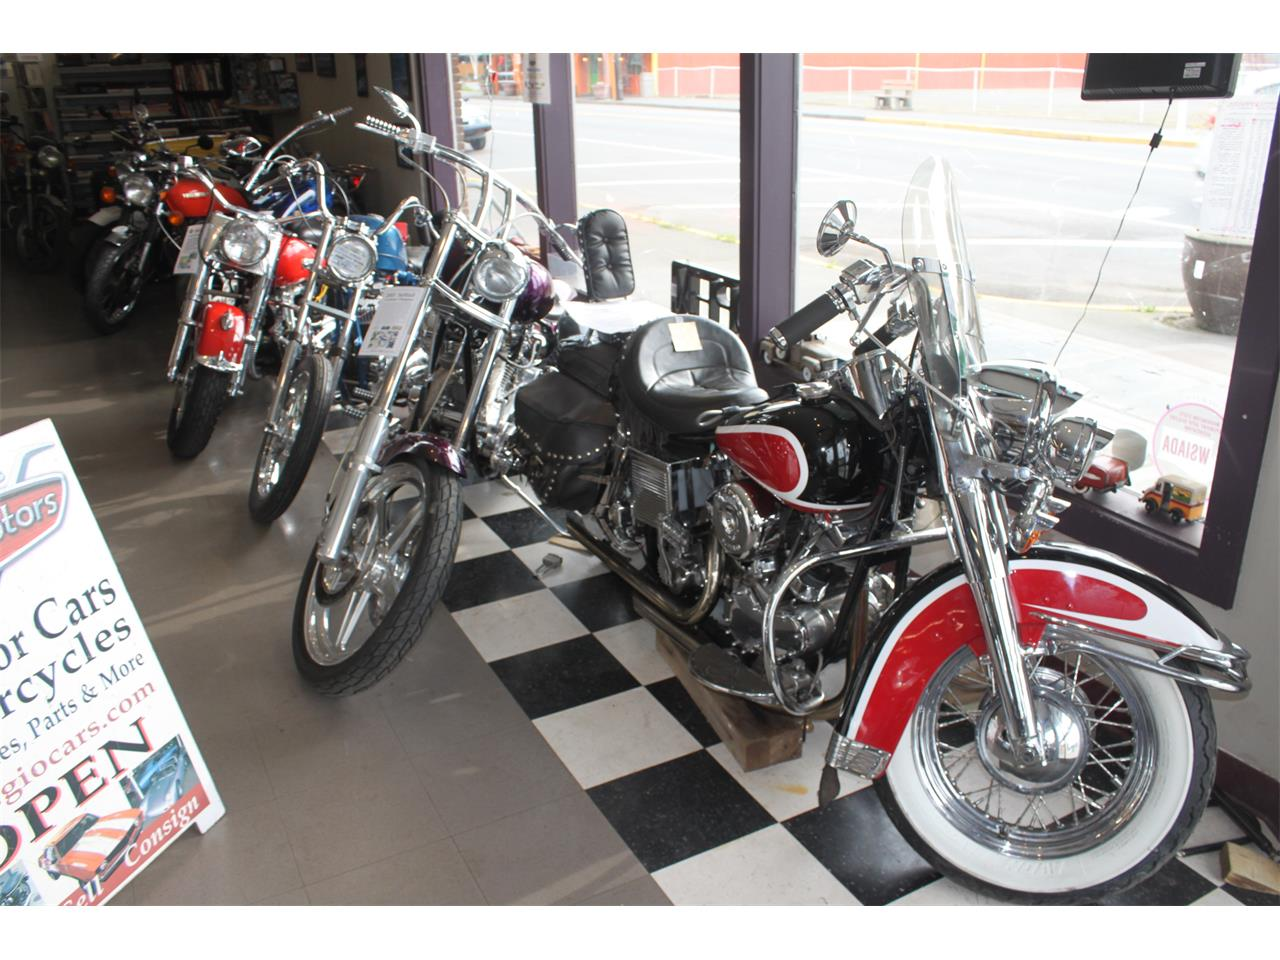 1950 Harley-Davidson Motorcycle for sale in Carnation, WA – photo 23